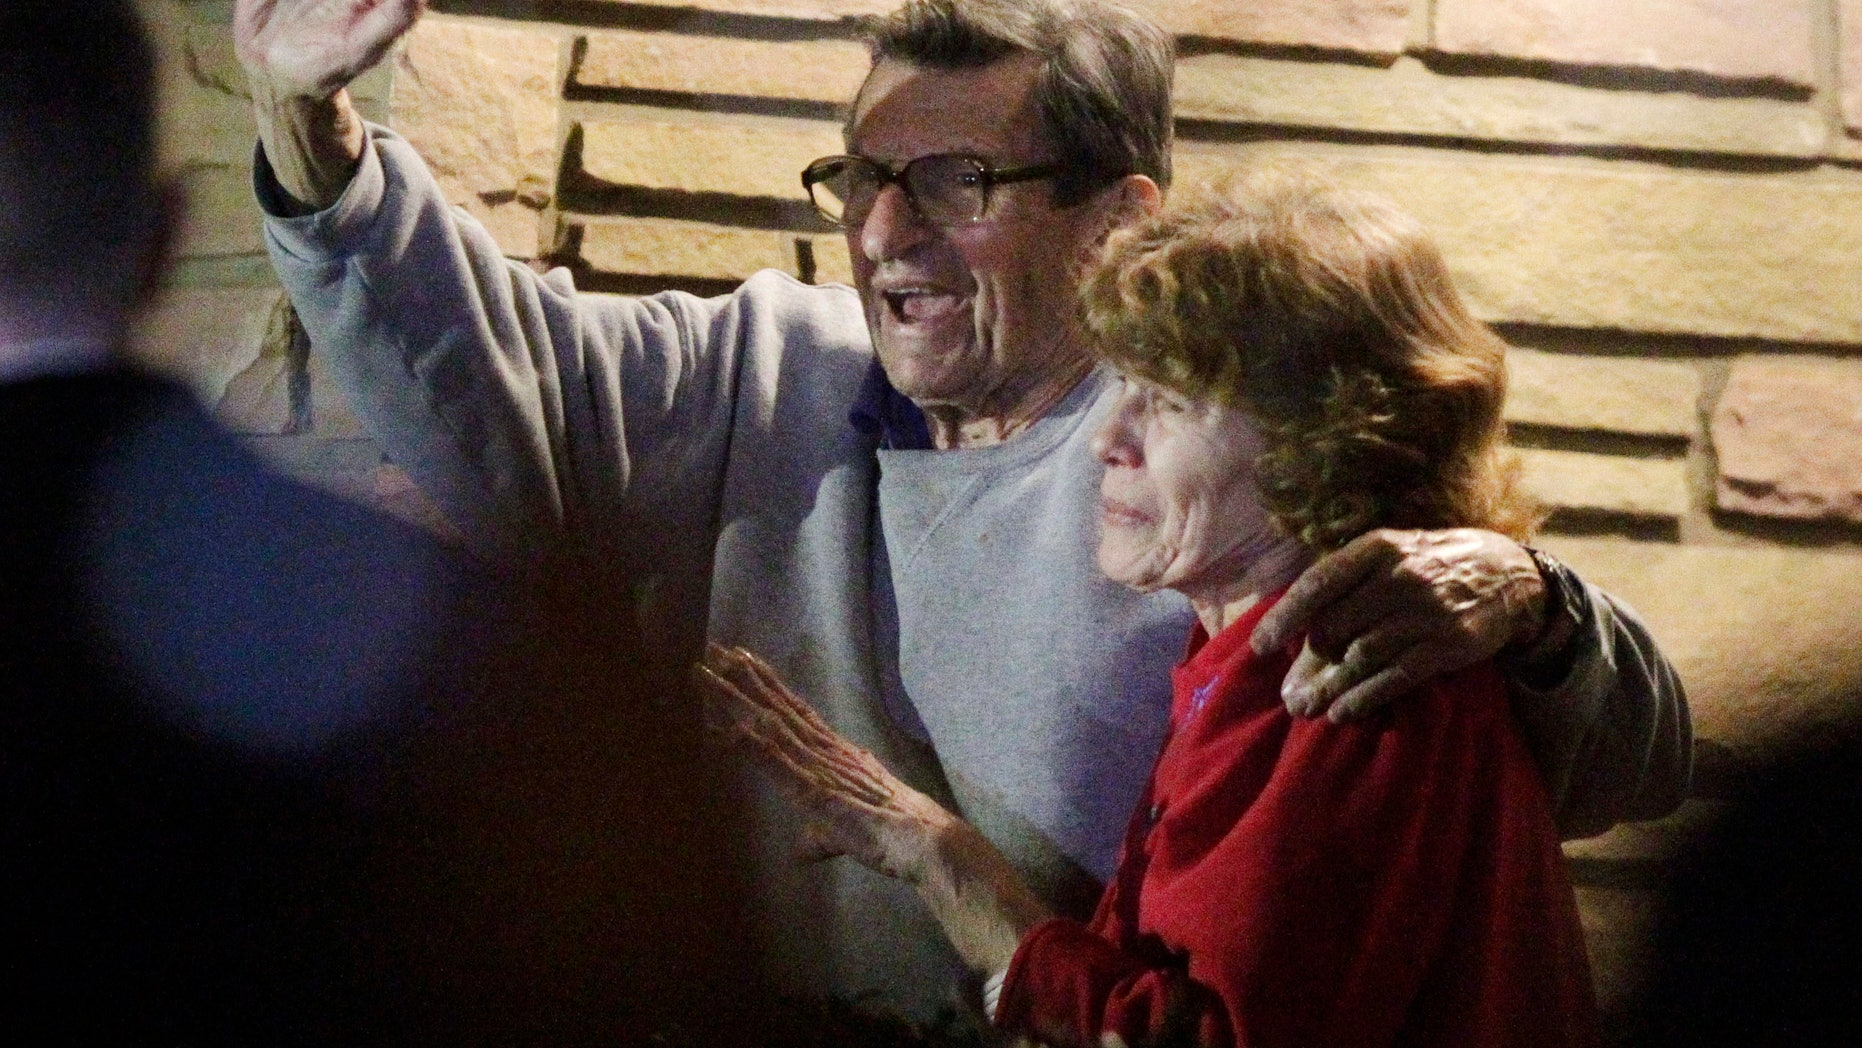 FILE - In this Nov. 9, 2011 file photo, former Penn State Coach Joe Paterno and his wife, Sue Paterno, stand on their porch to thank supporters gathered outside their home in State College, Pa. Sue Paterno says the family's detailed response to a critical report on the handling of child abuse allegations against former assistant coach Jerry Sandusky is being released to the public. (AP Photo/Gene J. Puskar, File)